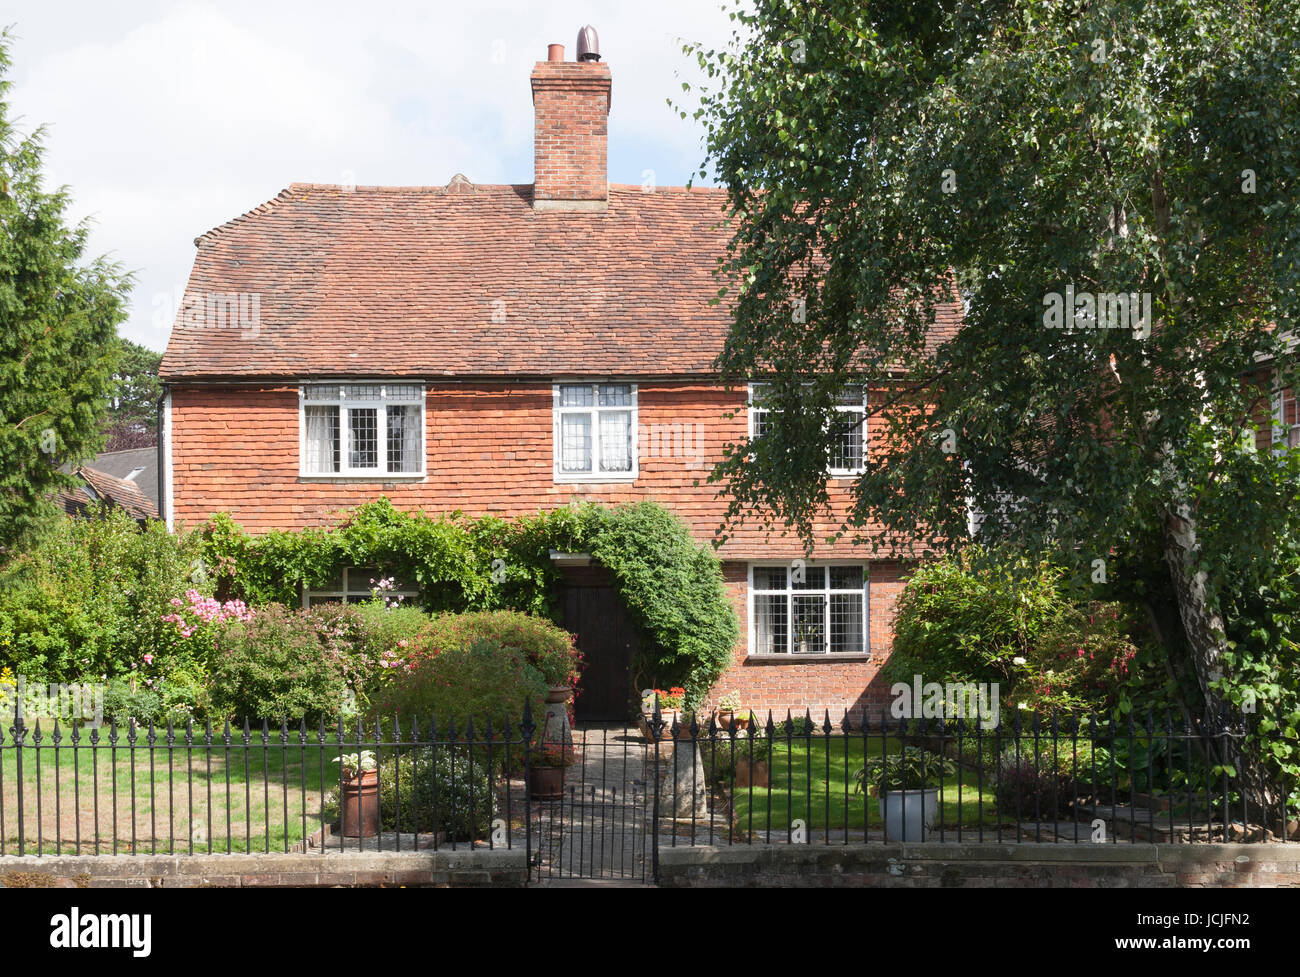 Cottage or House in Goudhurst Kent with clay tiled roof and upper storey walls - Stock Image